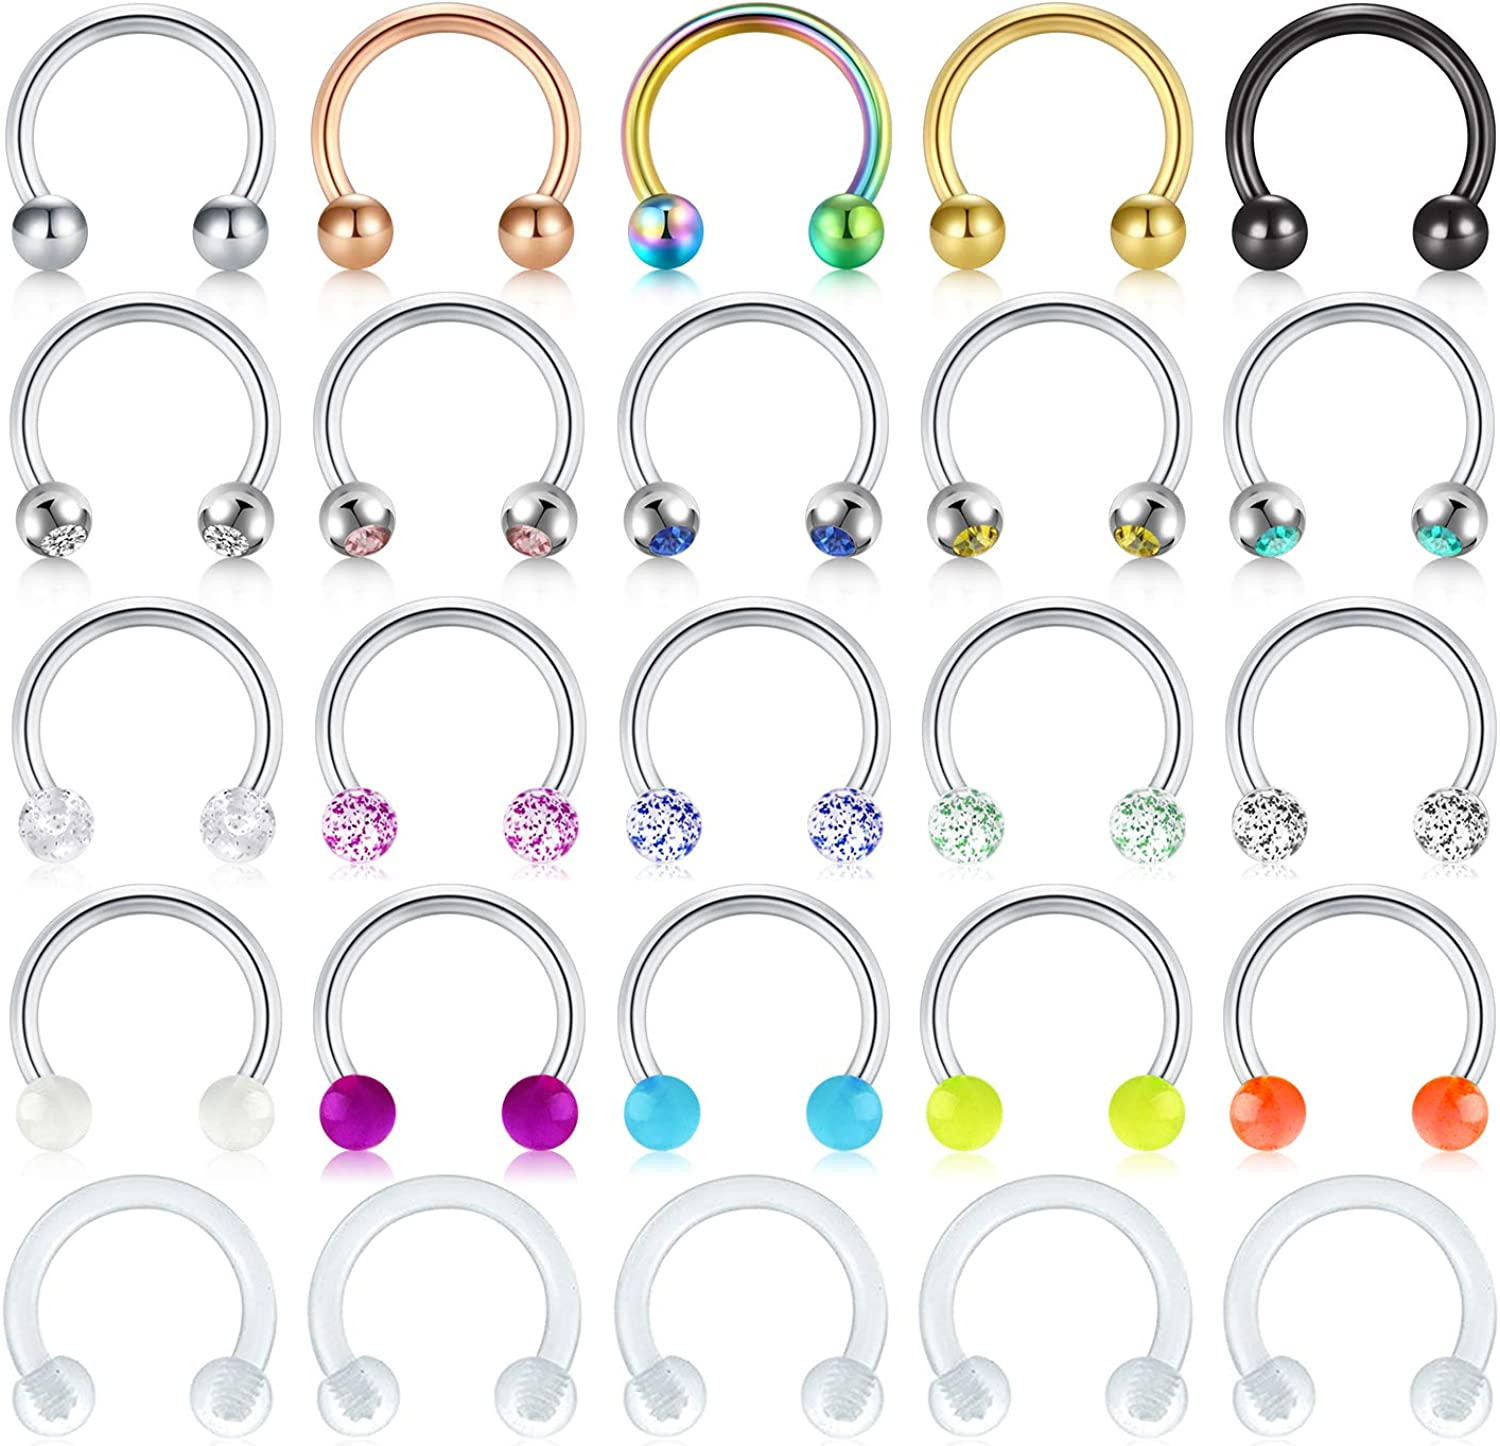 AceFun 24-25Pcs 16G Septum Nose Rings Hoop Horseshoe Barbell Surgical Steel Lip Labret Helix Tragus Conch Cartilage Earrings Hoop Piercing Jewelry for Women Men